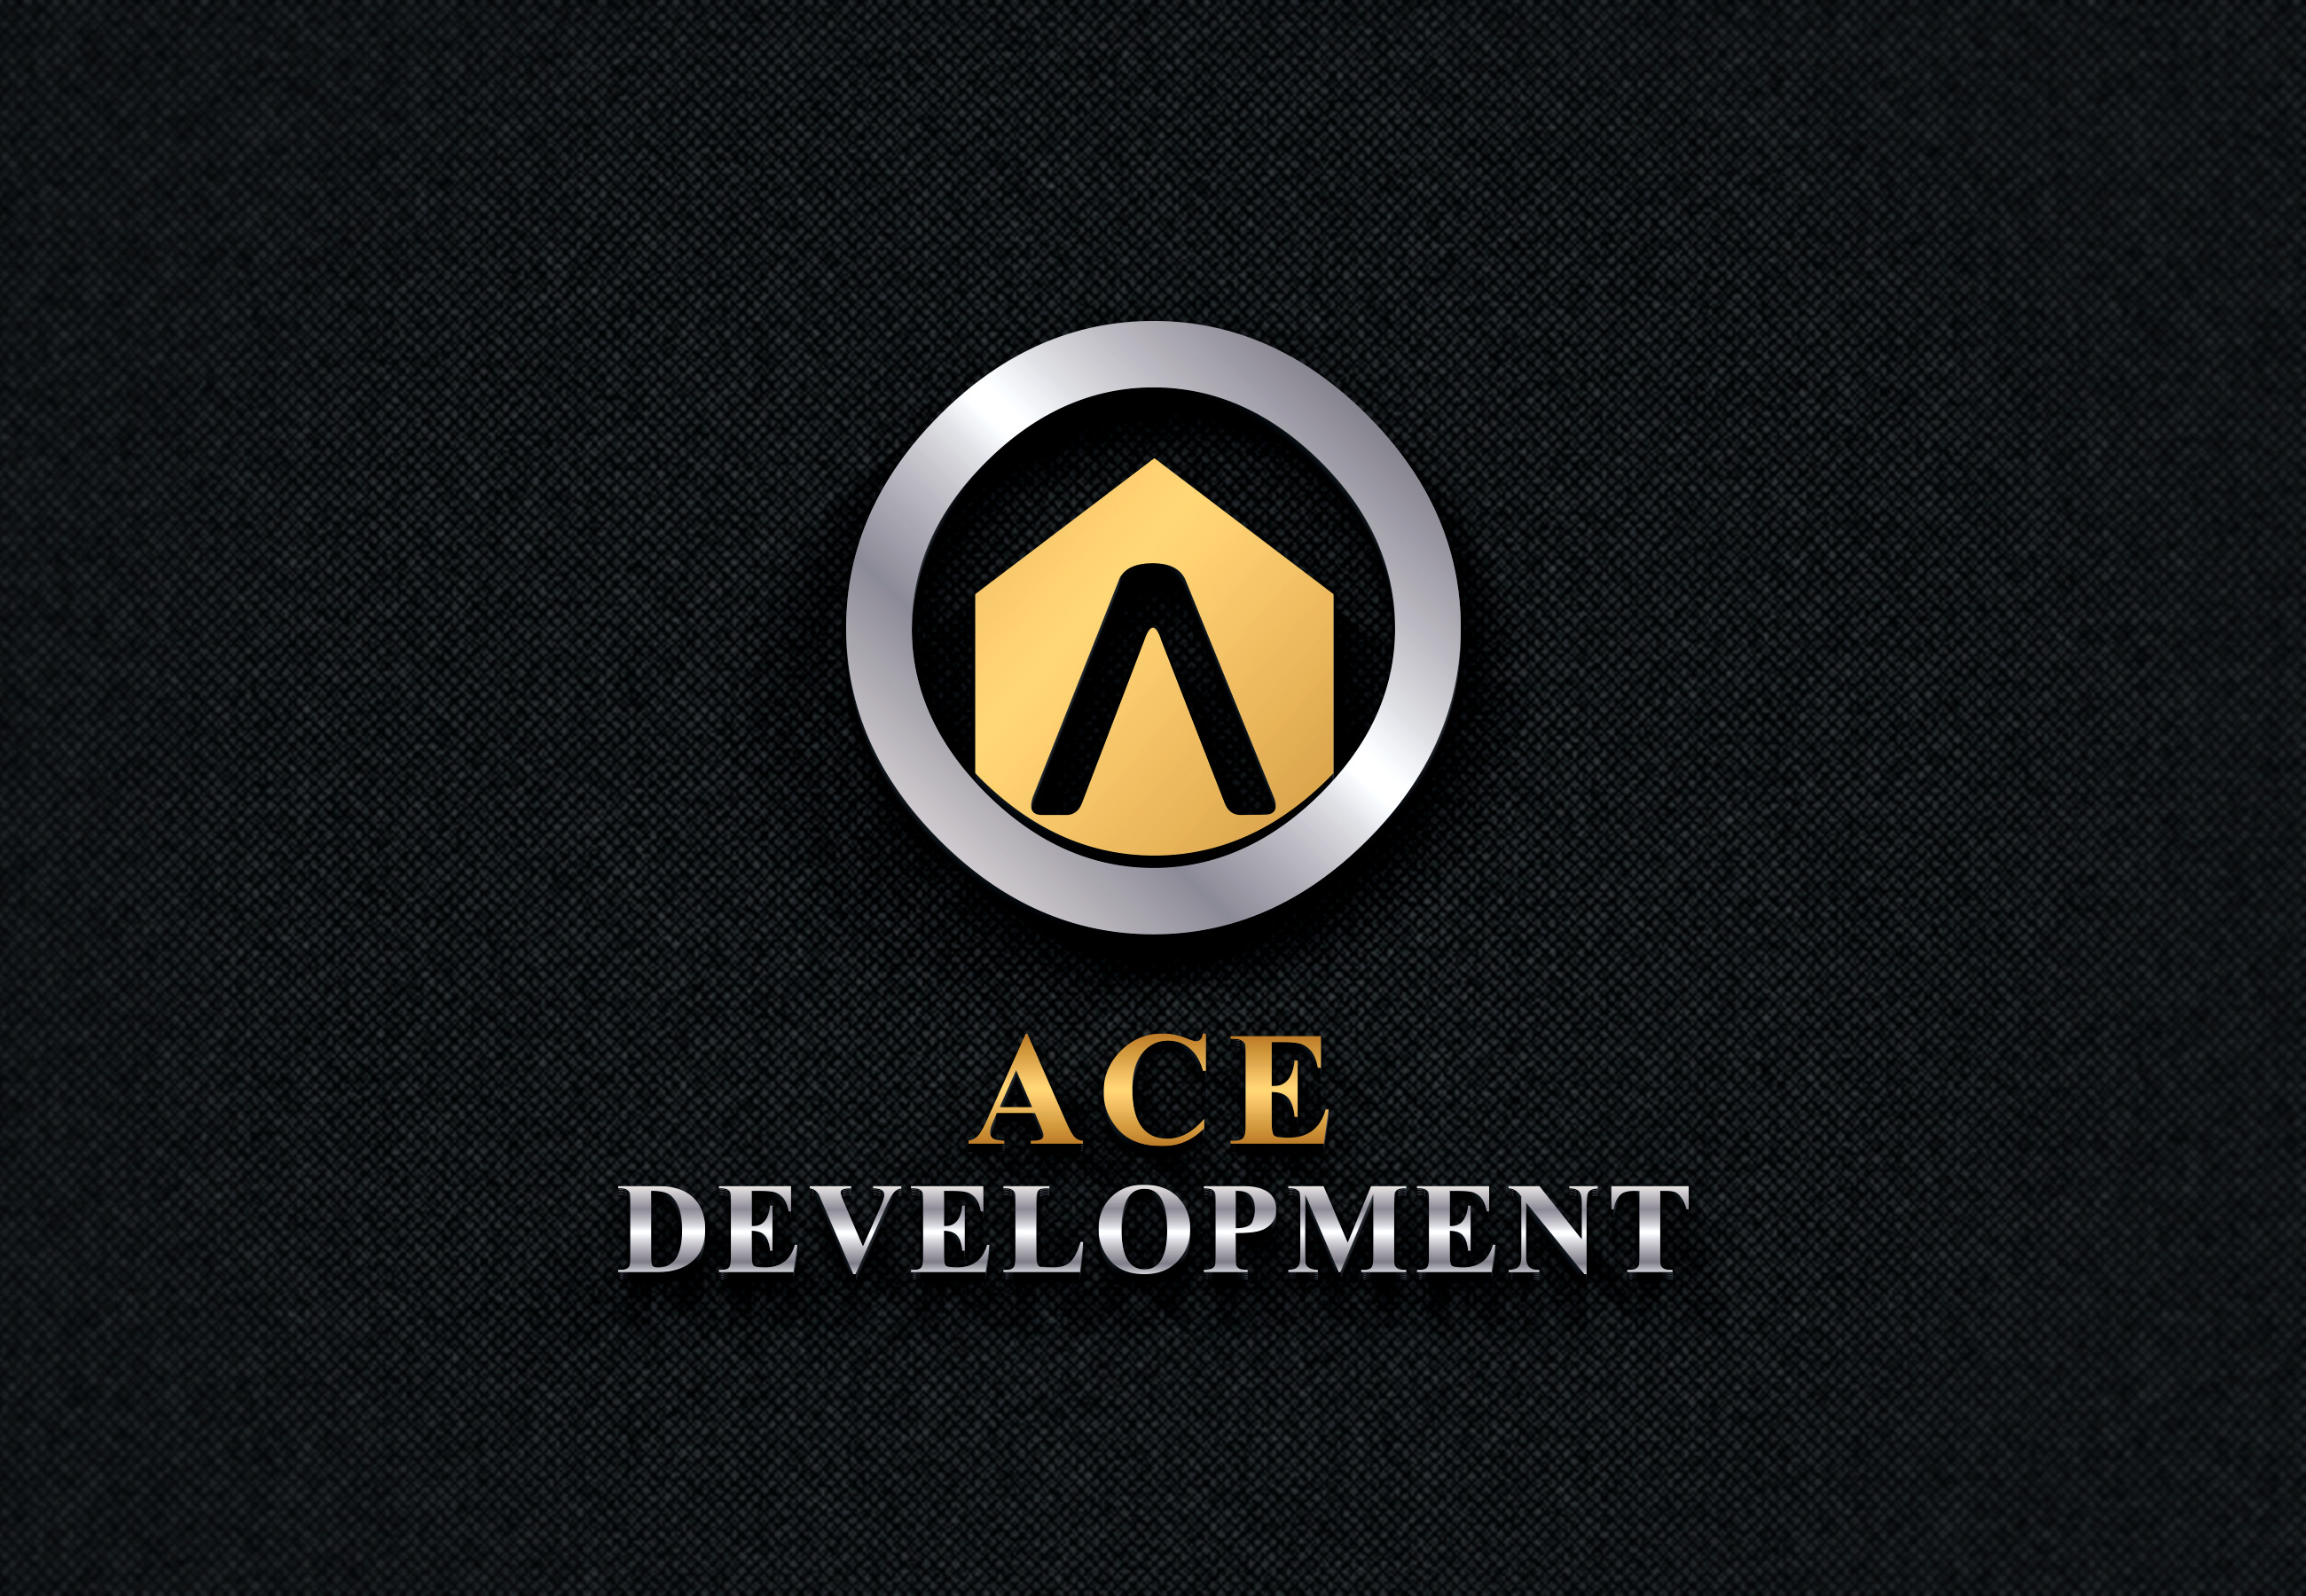 Logo Design by Umair ahmed Iqbal - Entry No. 103 in the Logo Design Contest Fun Logo Design for Ace development.